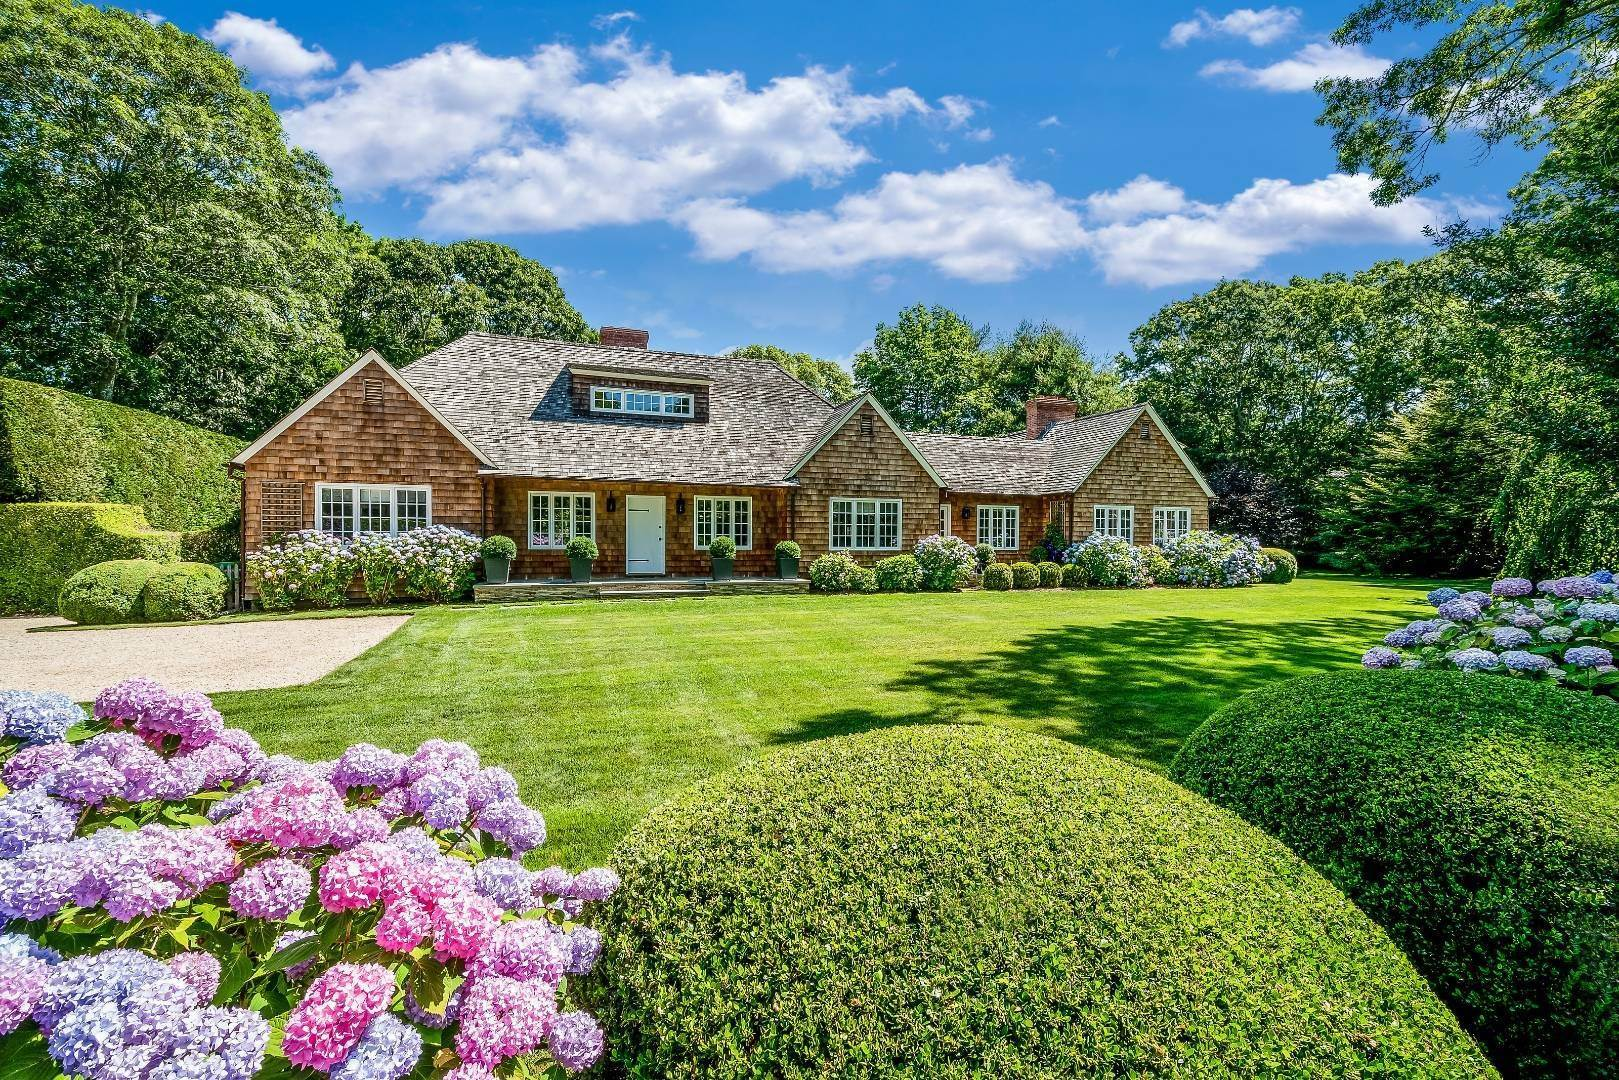 2. Single Family Home at Stunning In Wainscott South Wainscott, NY 11975